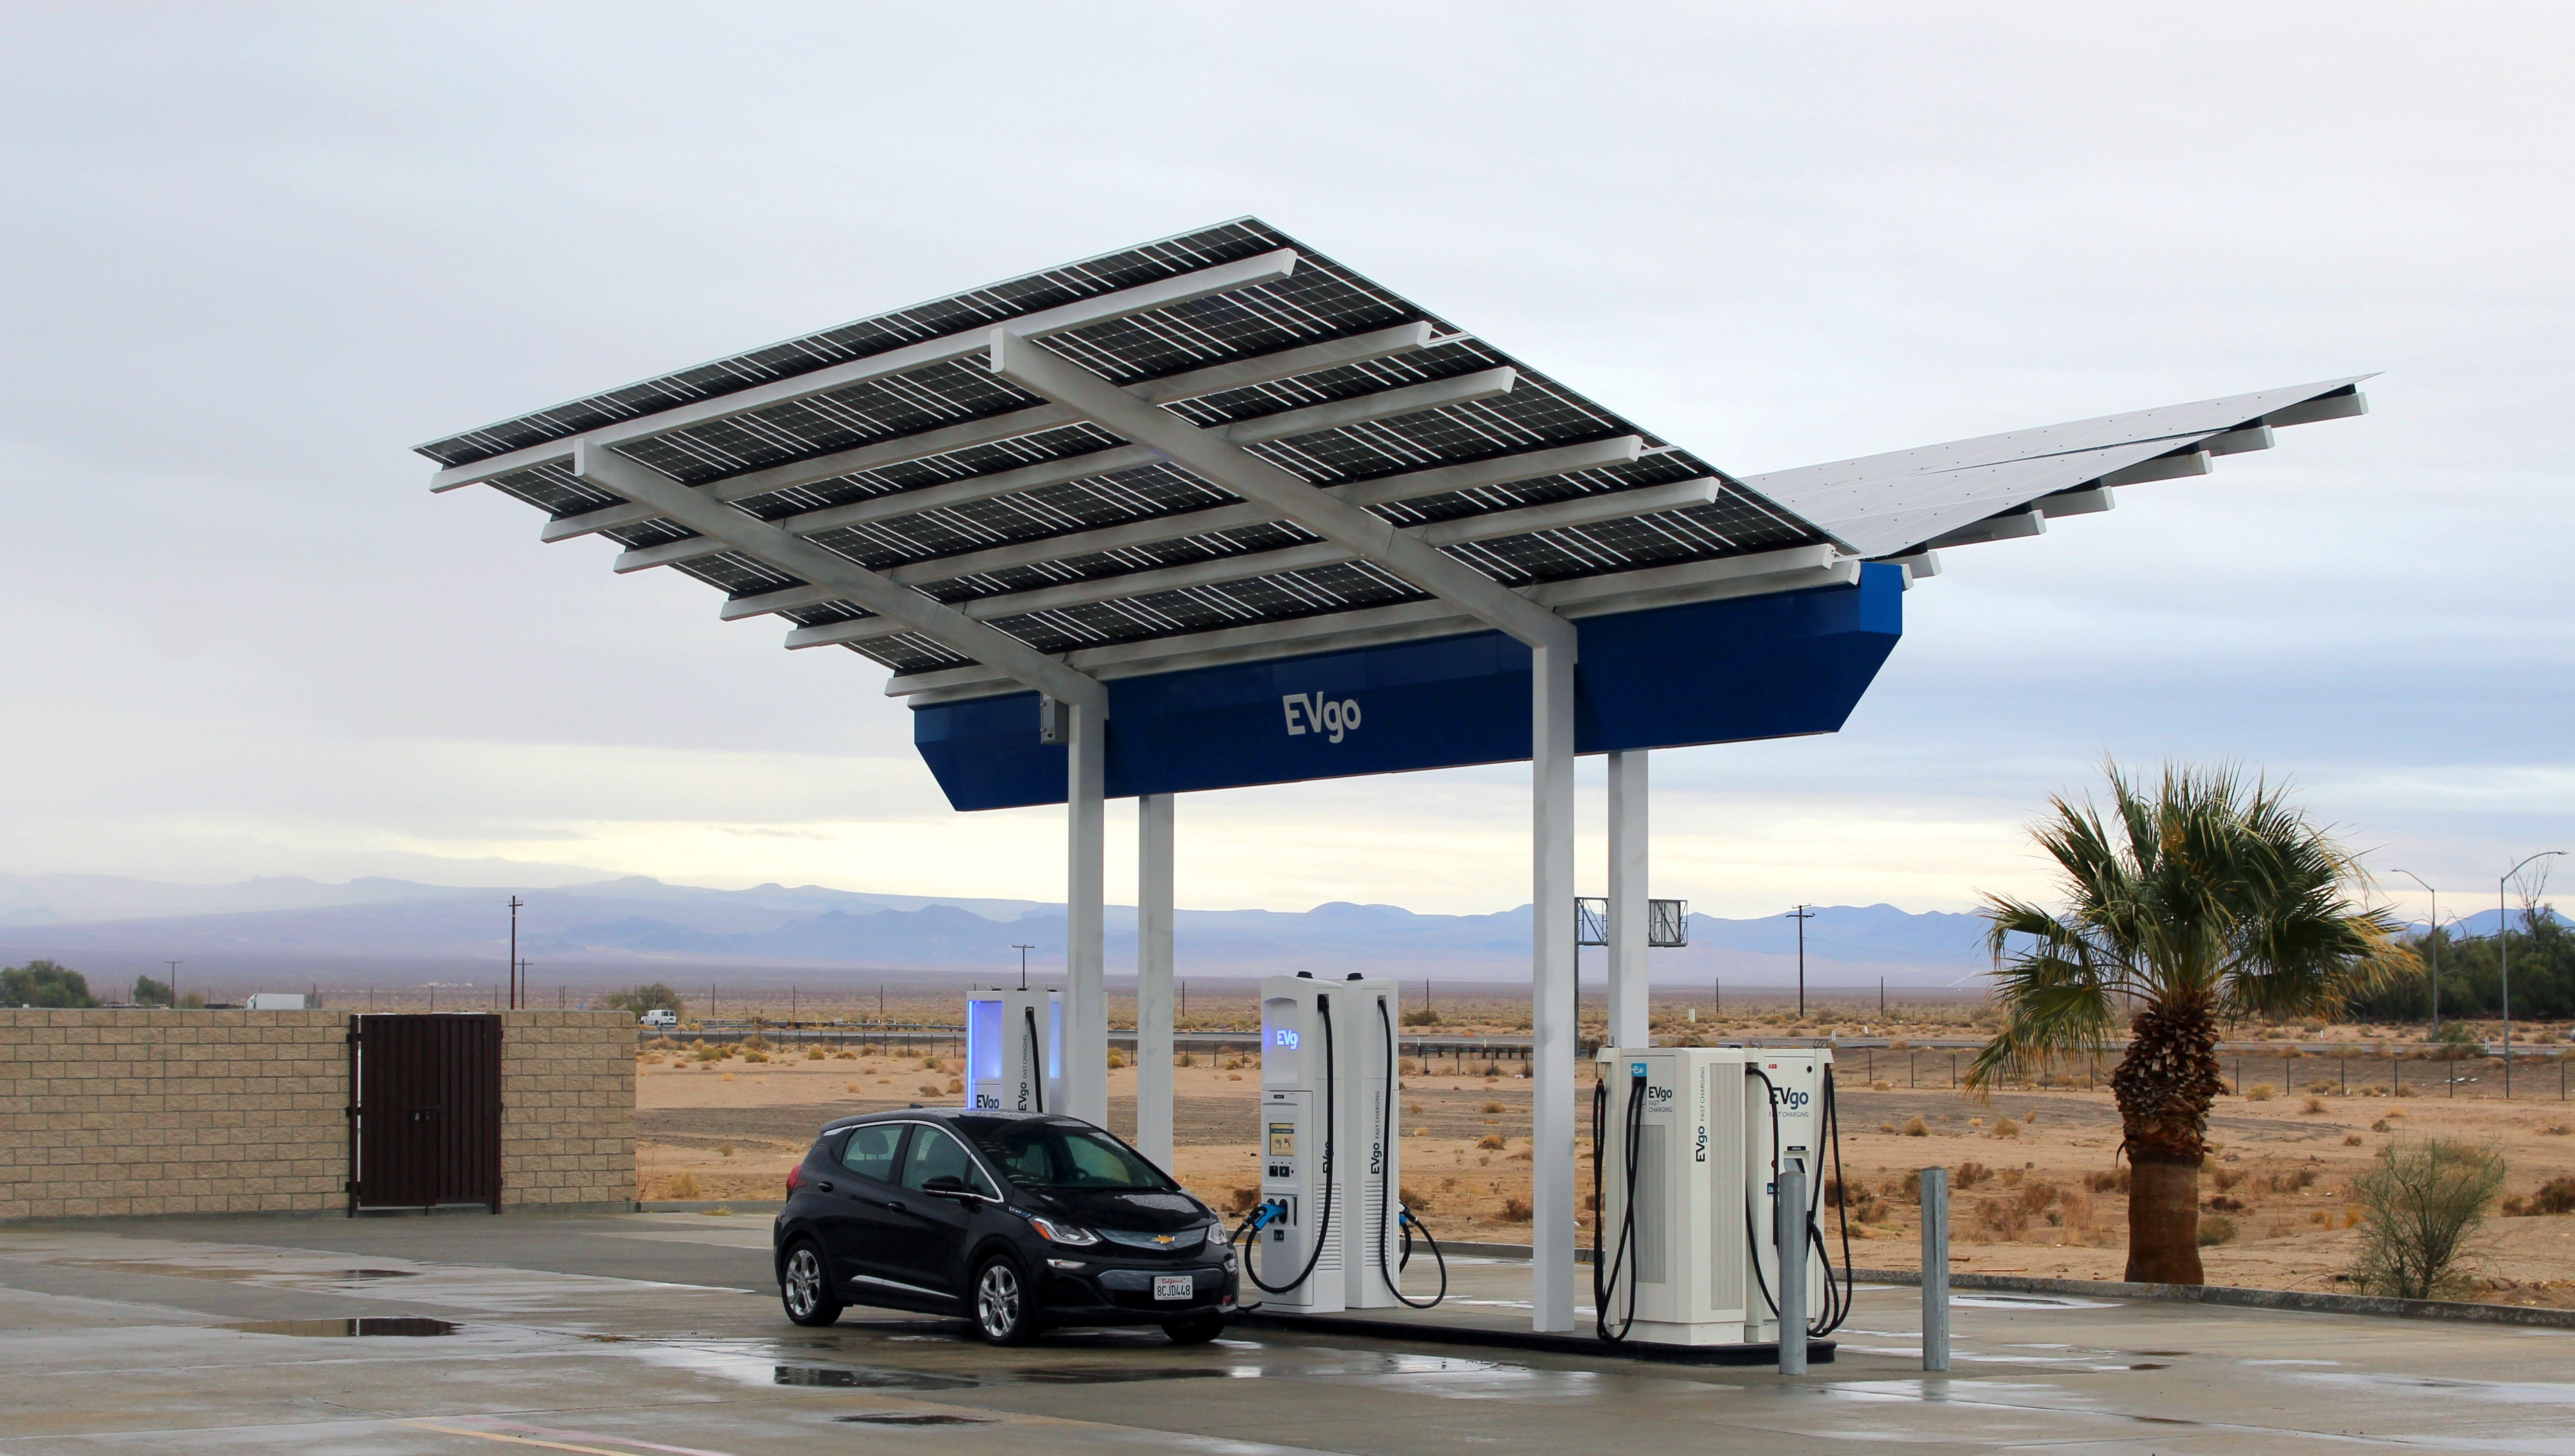 EVgo Goes Plaid With New Ultra-Fast Charging Station In Baker